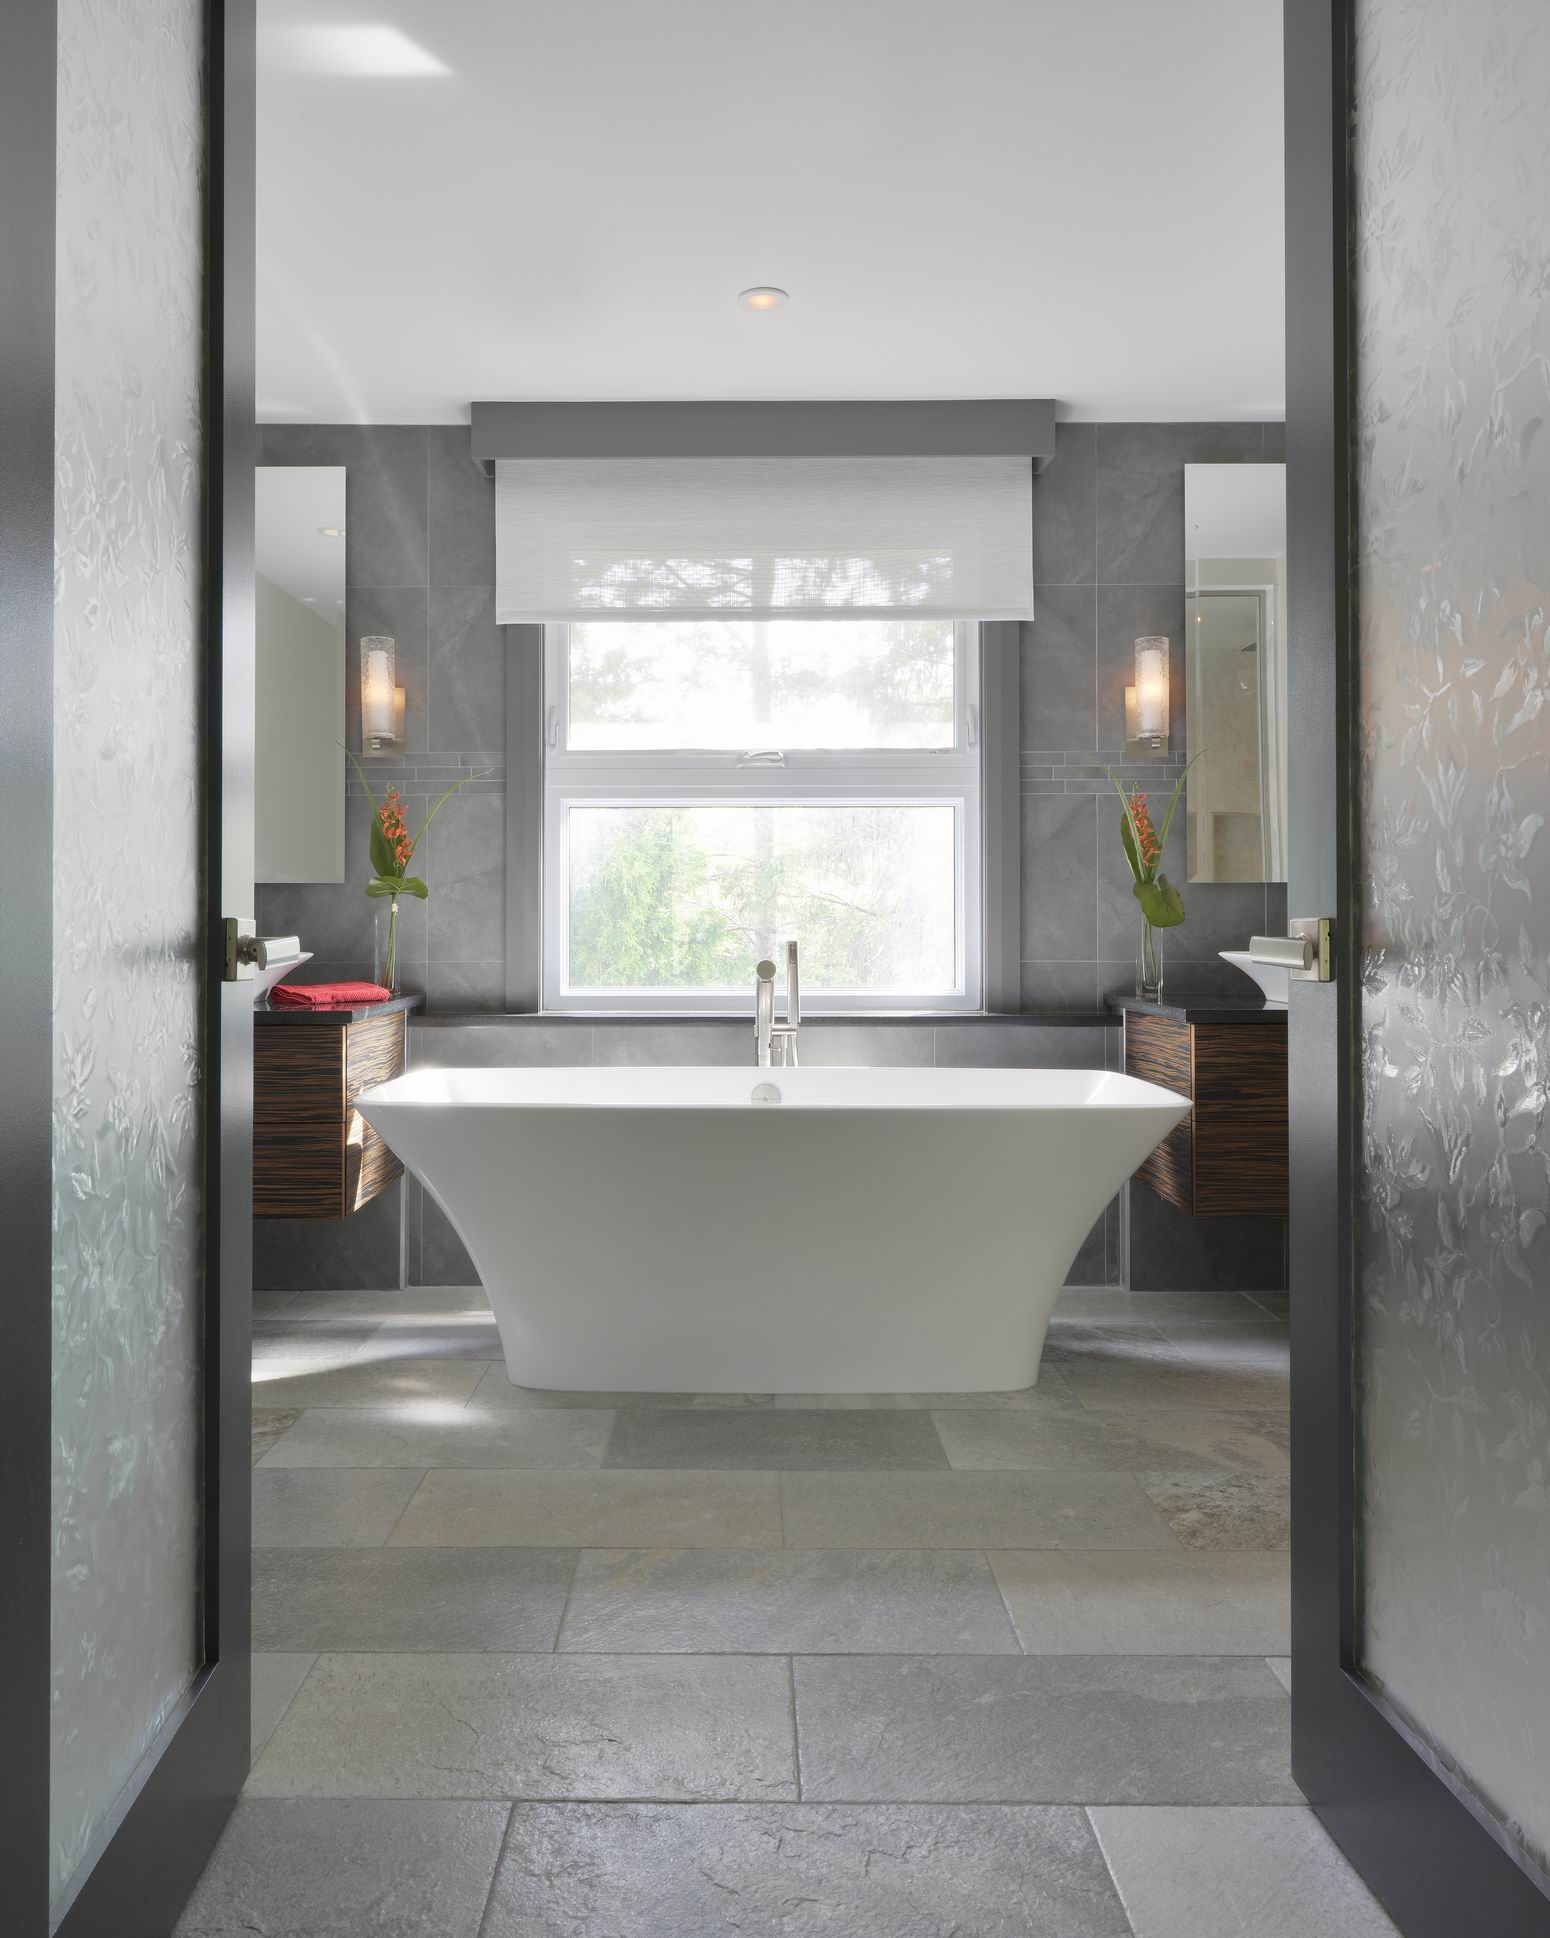 Bathroom Renovation Guide: Let Our Free E-book Guide You Through The Bathroom